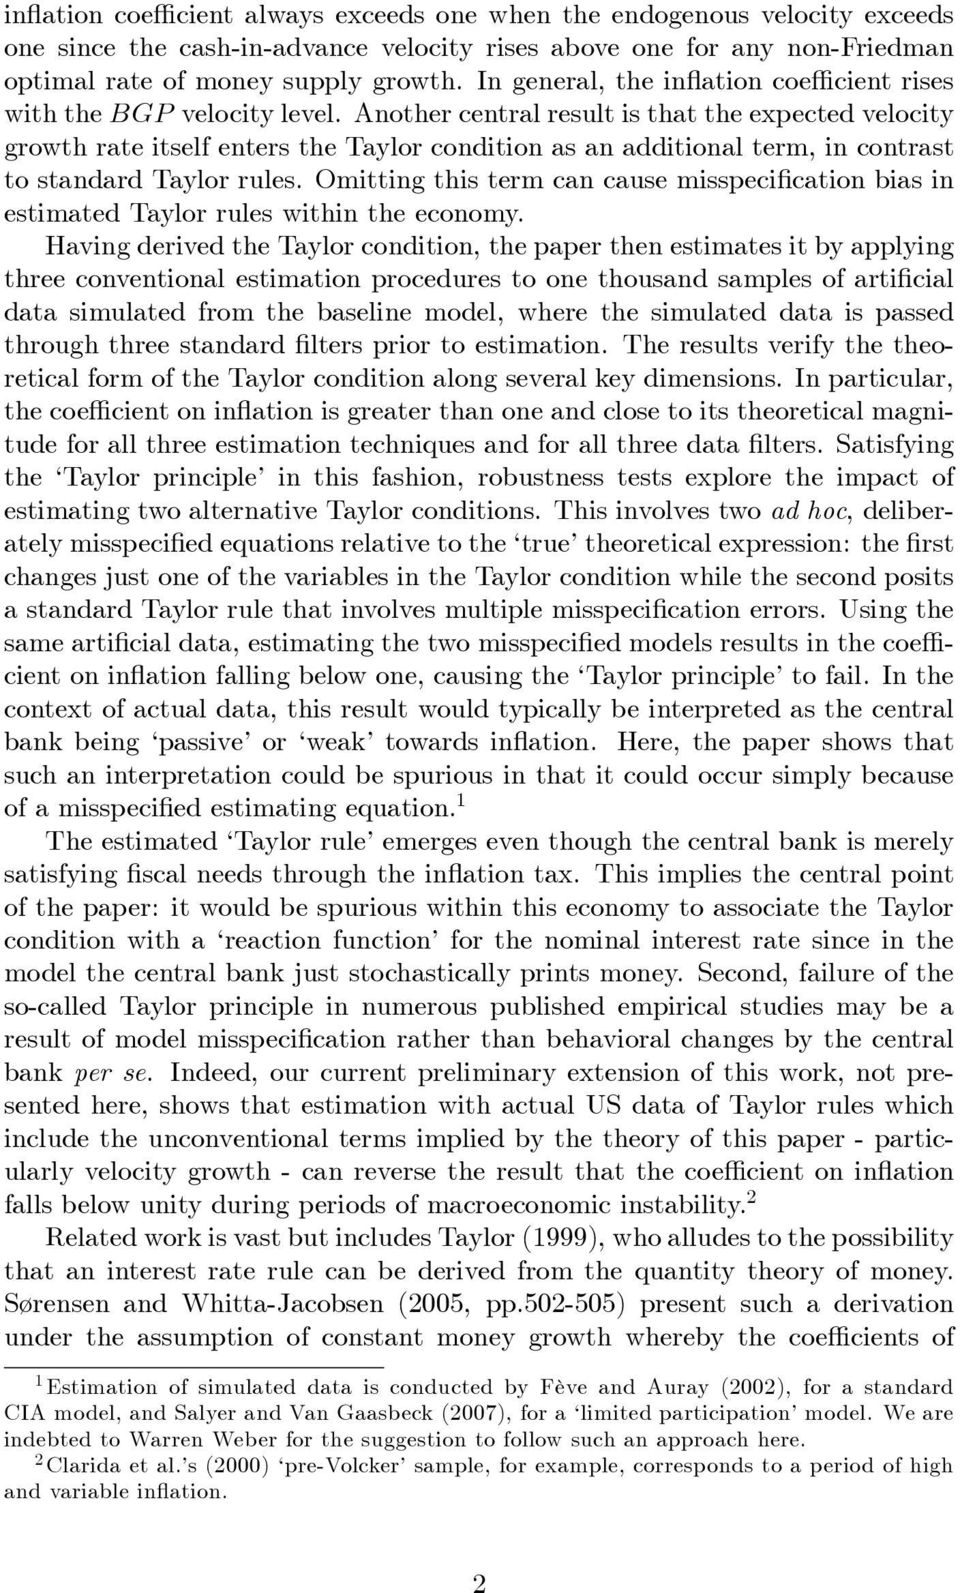 Another entral result is that the expeted veloity growth rate itself enters the Taylor ondition as an additional term, in ontrast to standard Taylor rules.